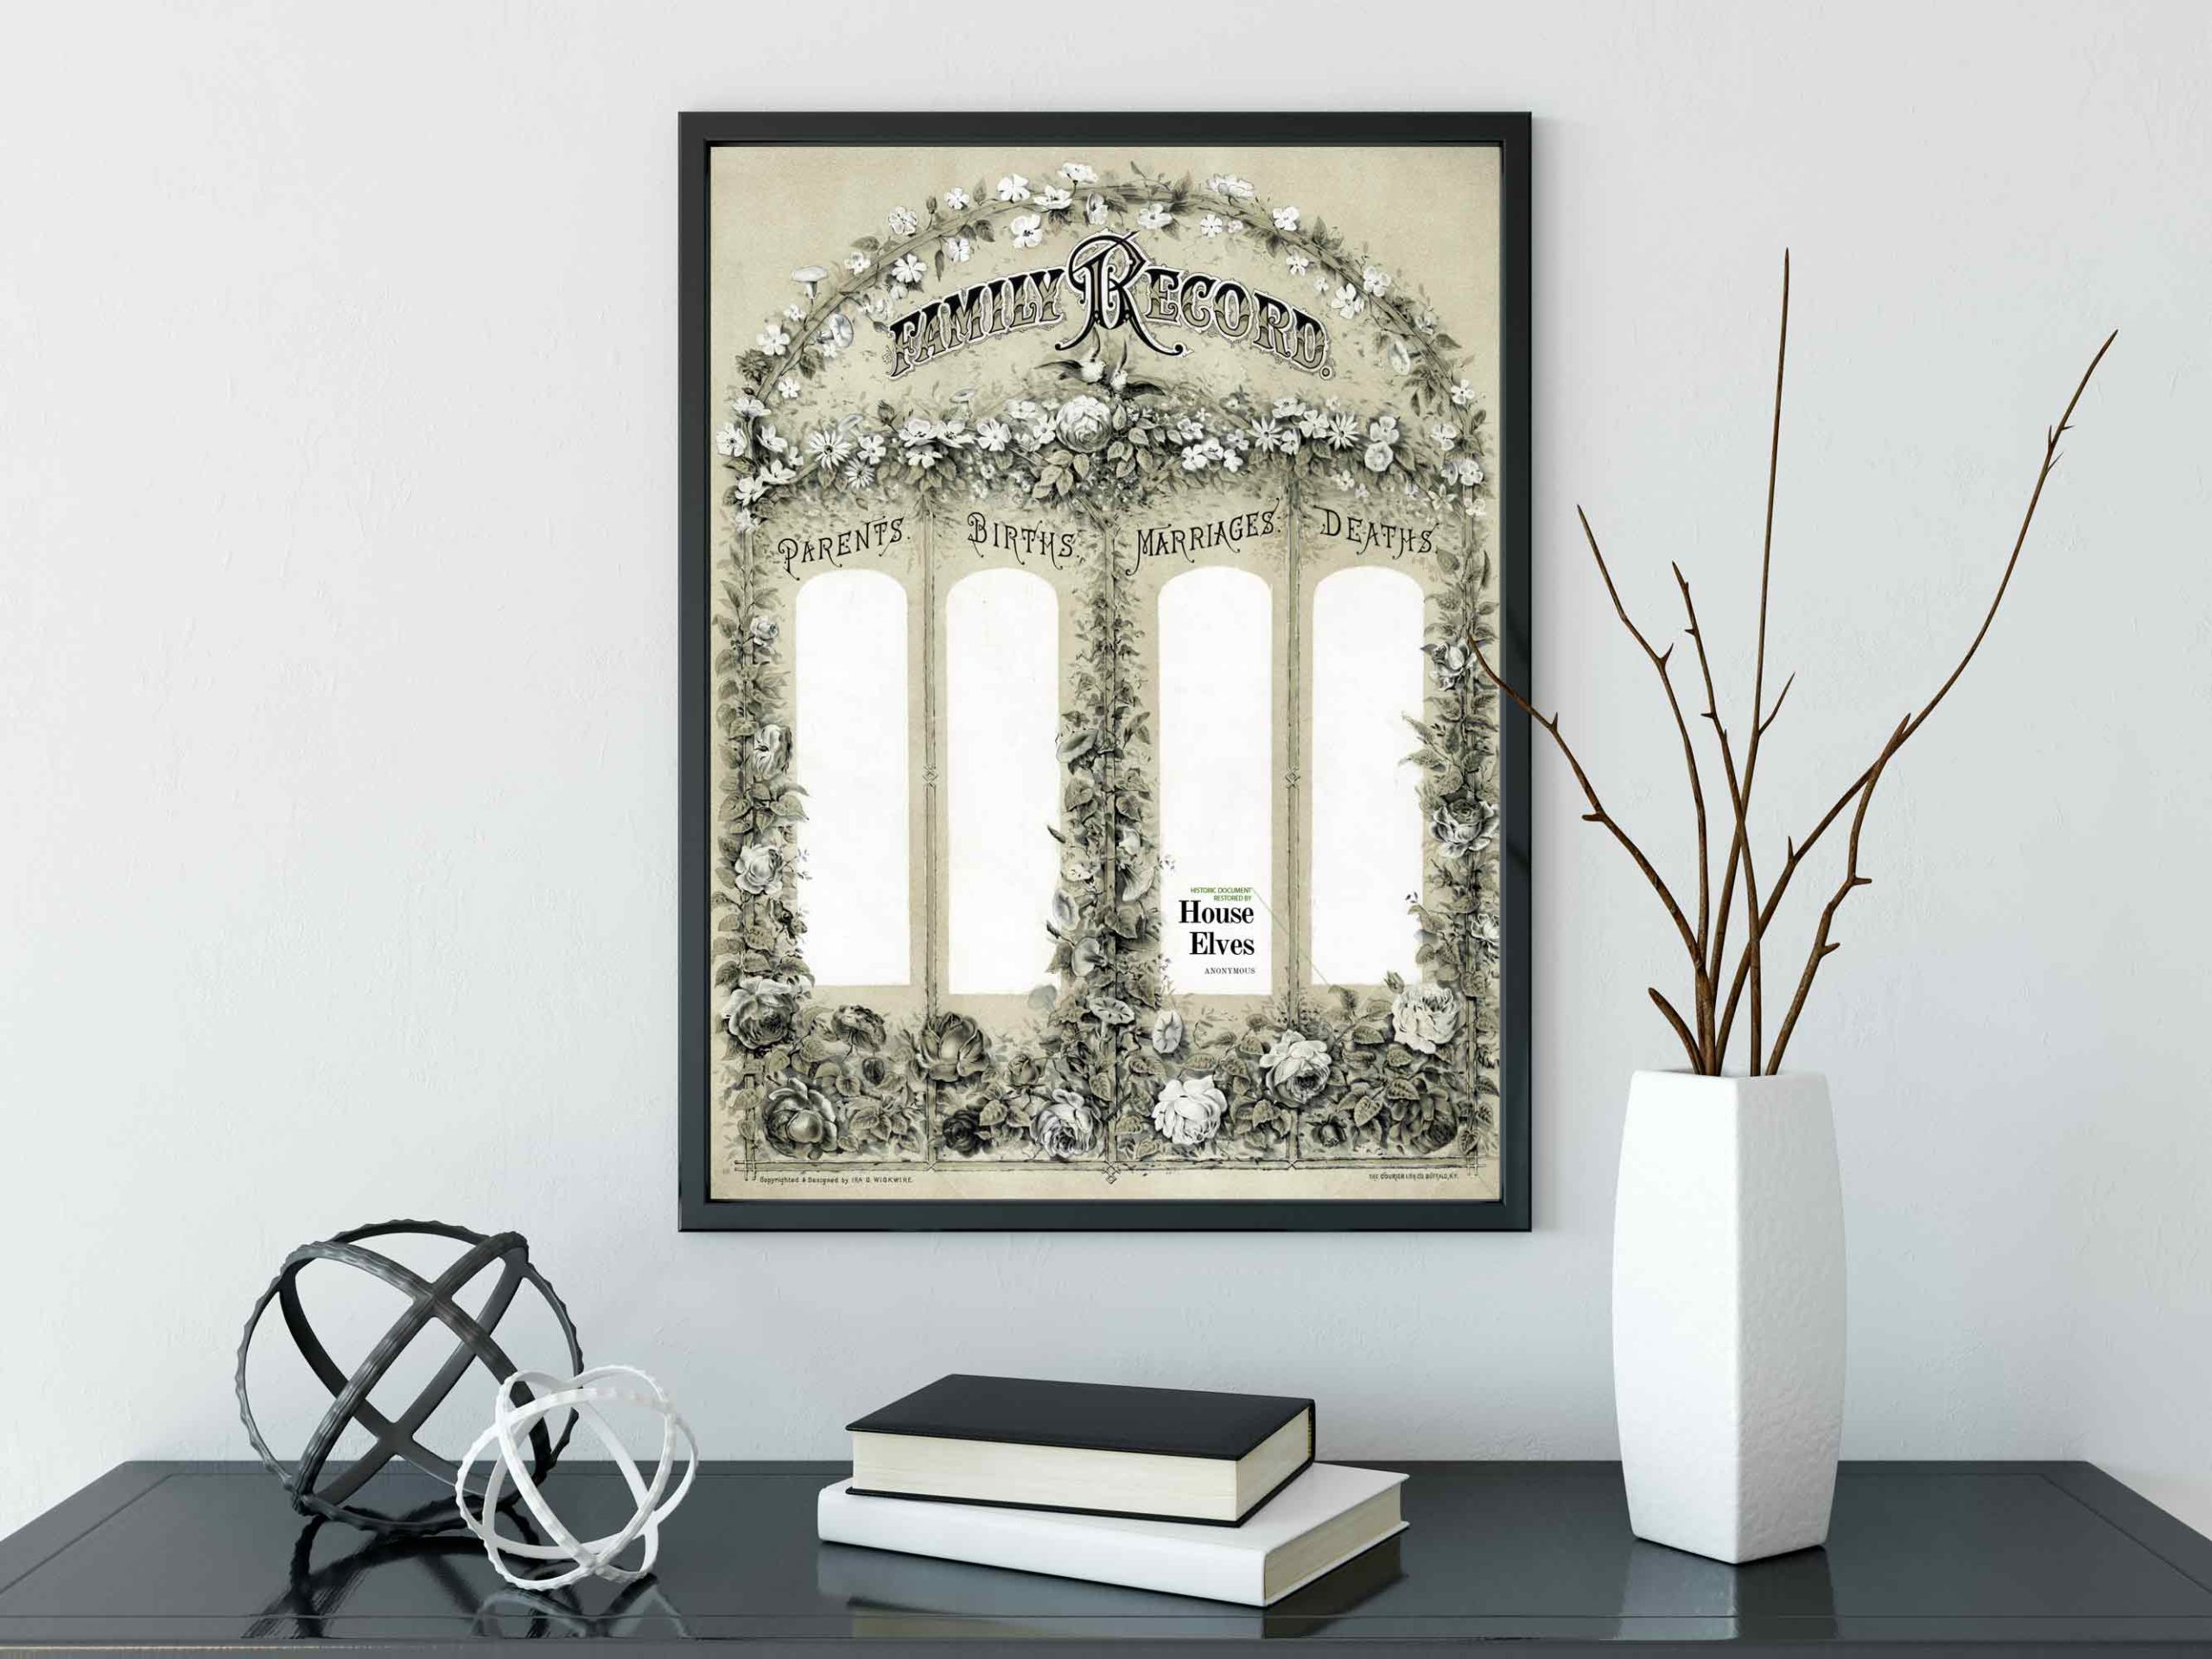 4-column-trellis-family-register-poster-print-file-large